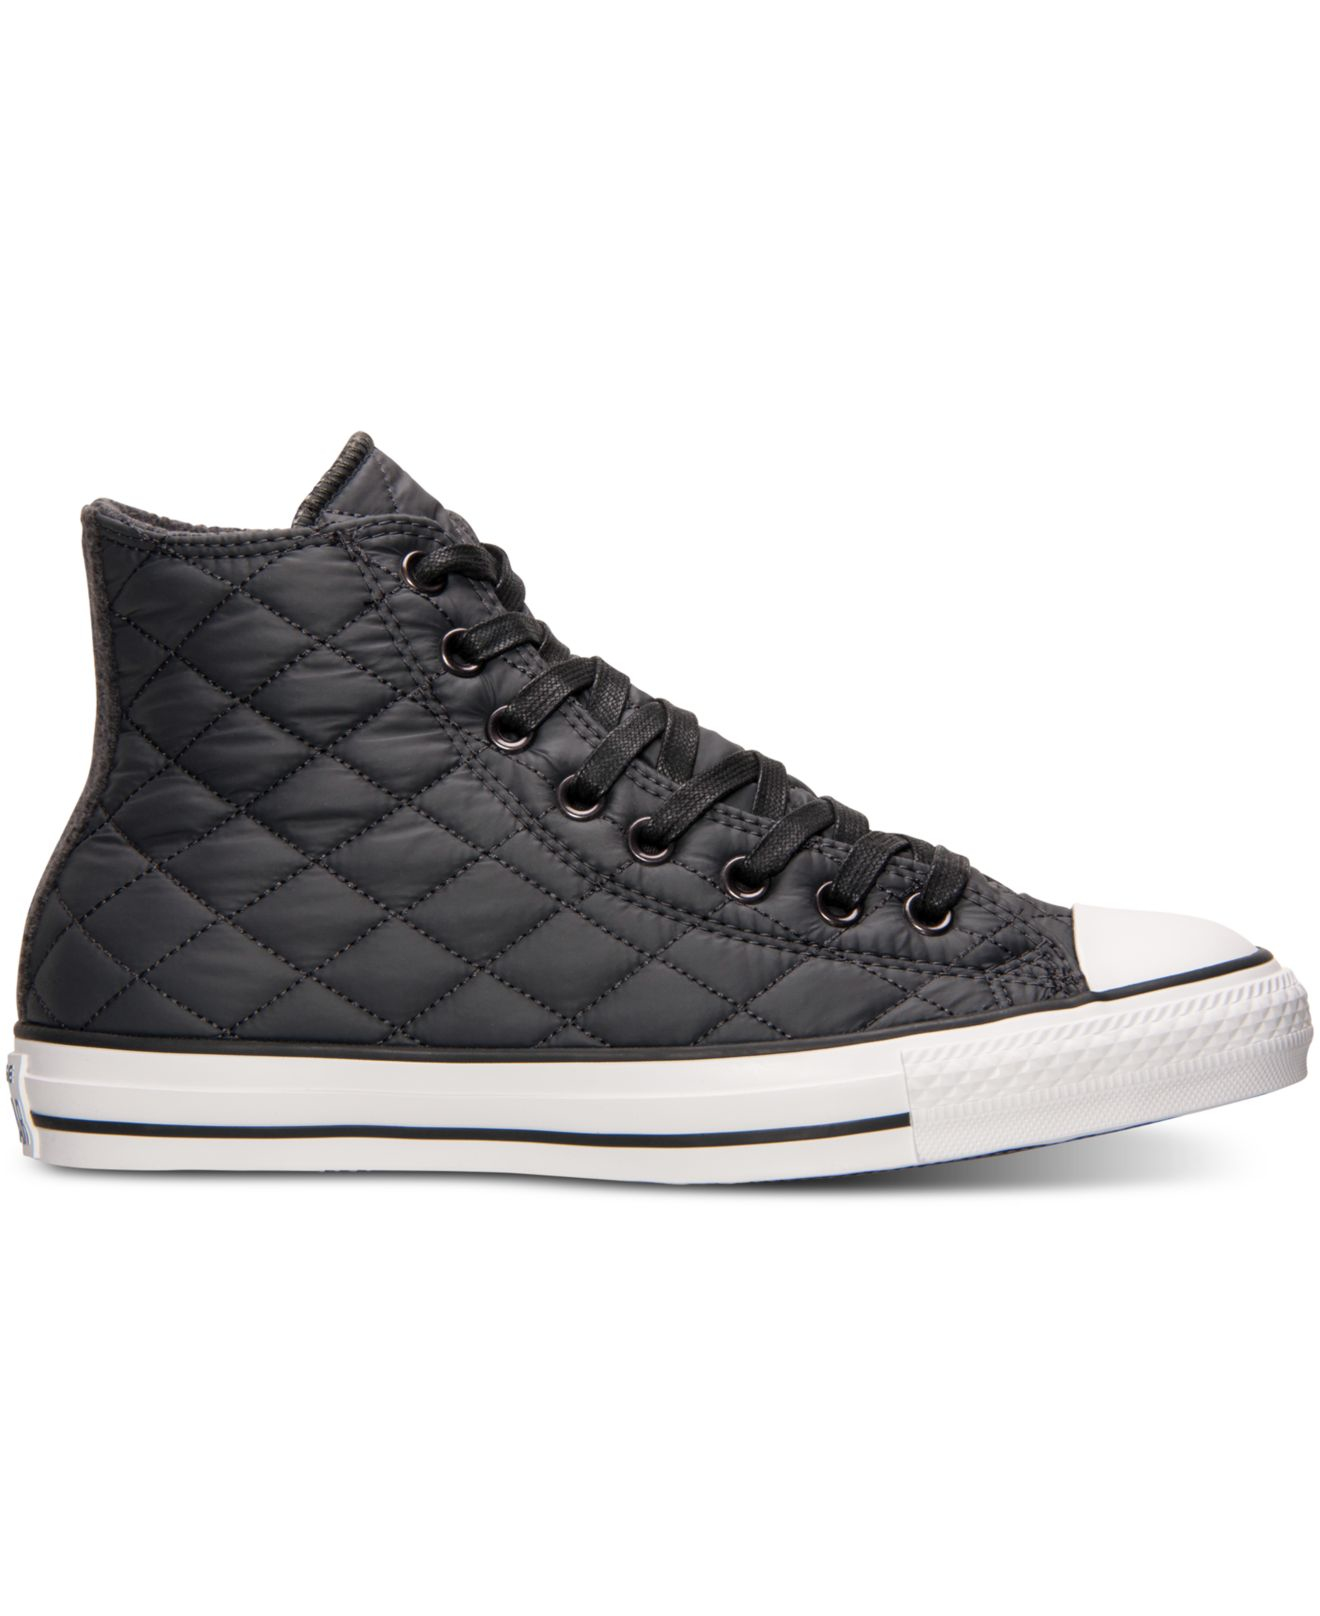 26be328d9f3a Lyst - Converse Unisex Chuck Taylor Hi Quilted Nylon Casual Sneakers ...